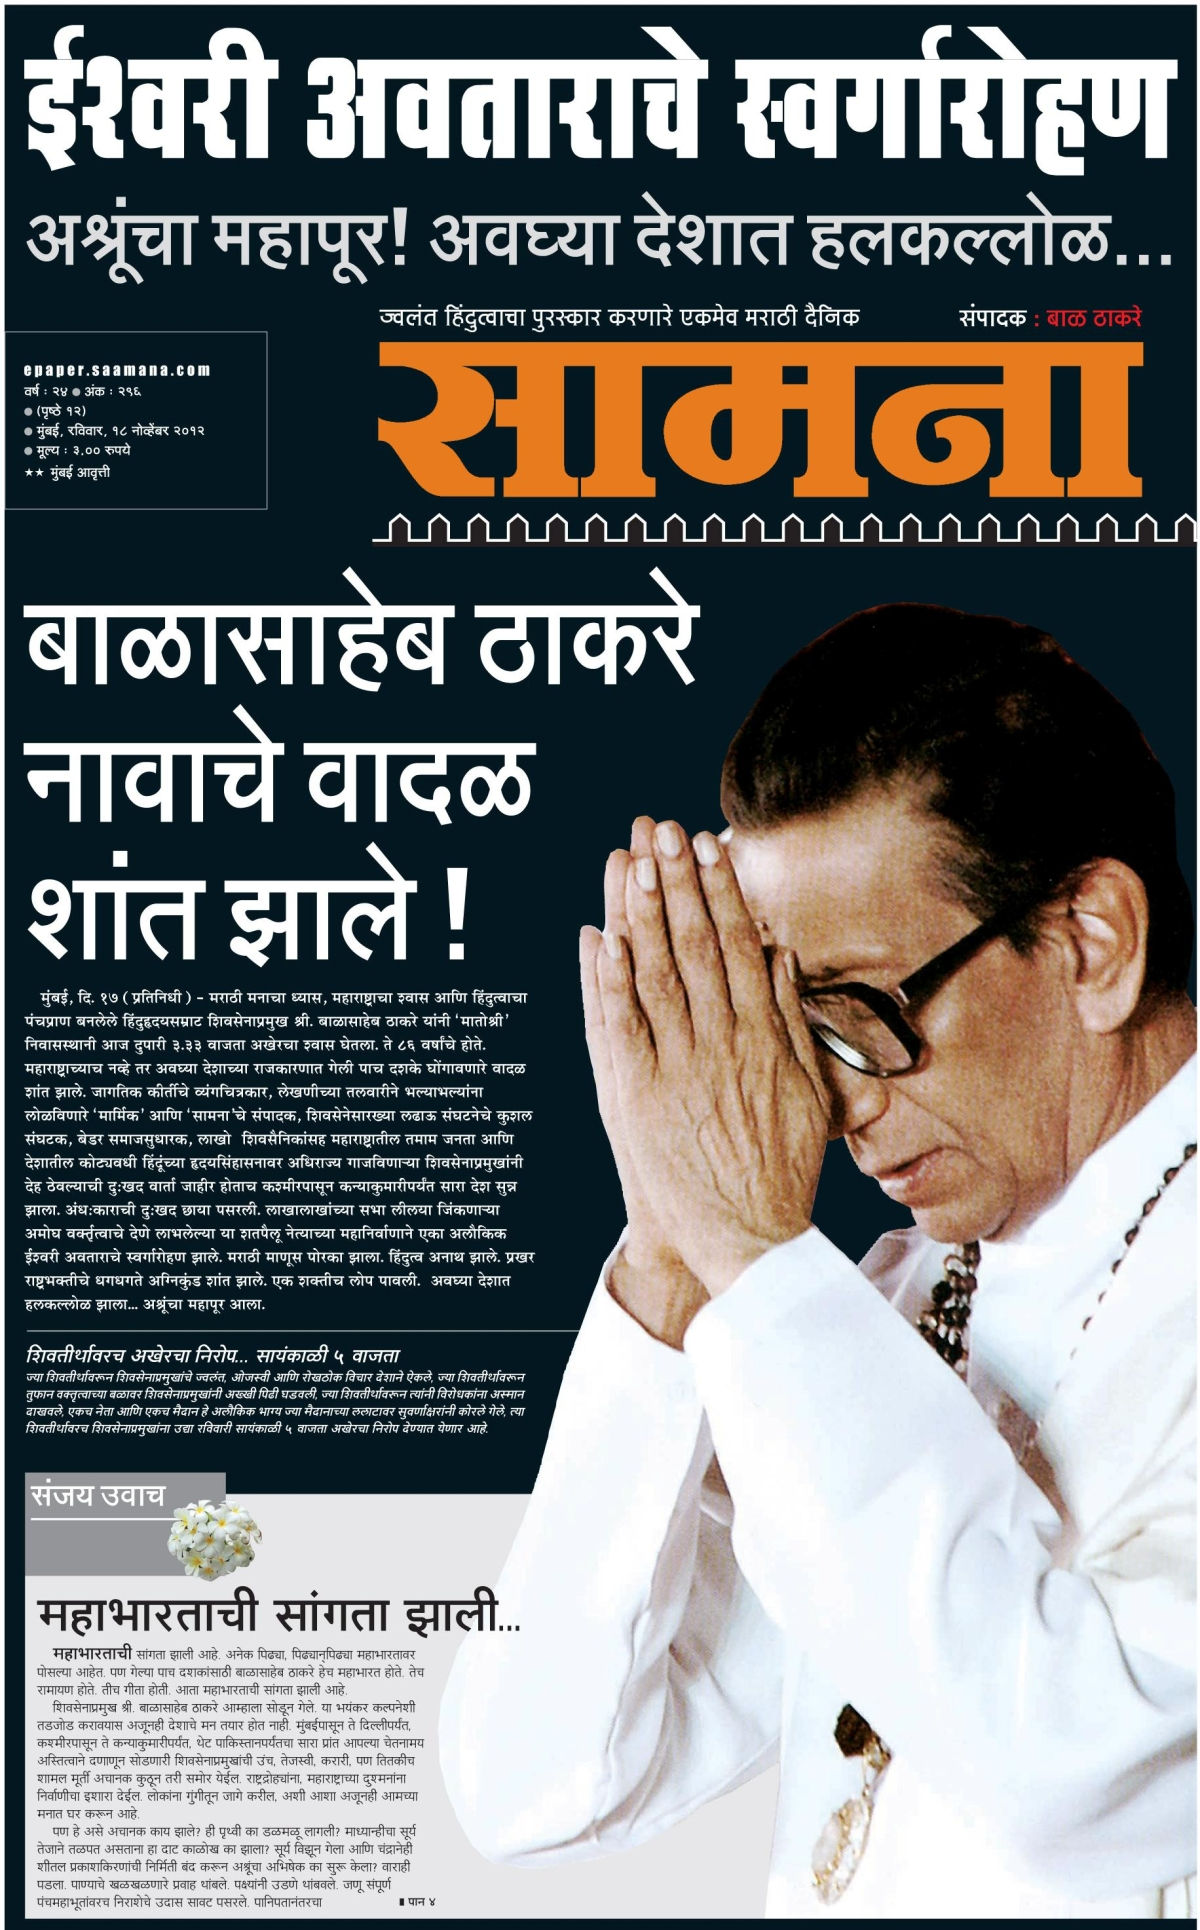 Thackeray's two newspapers sport full black front pages